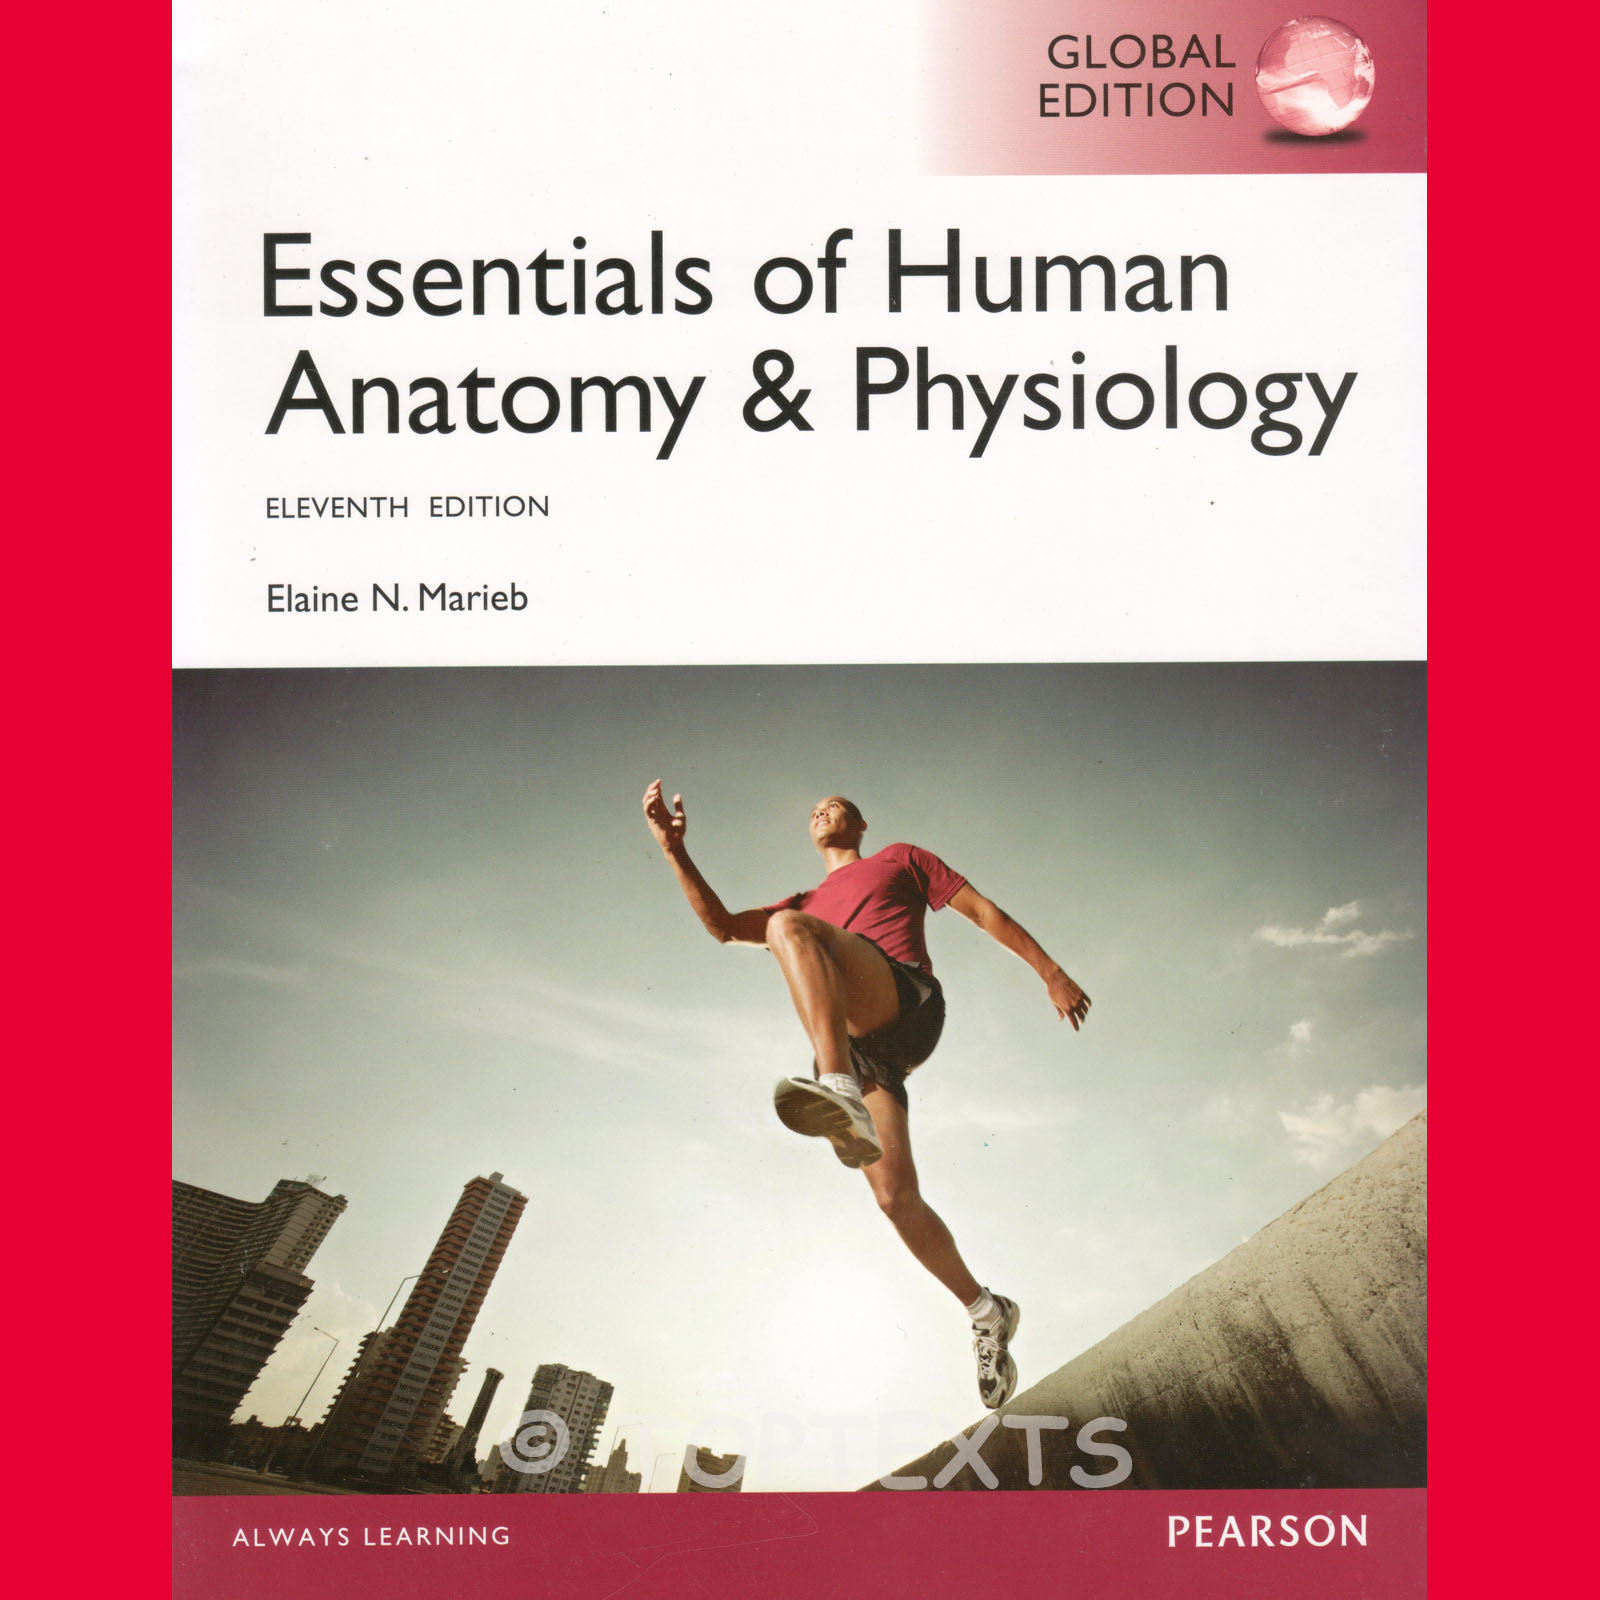 Essentials Of Human Anatomy And Physiology Textbook : Manual De ...